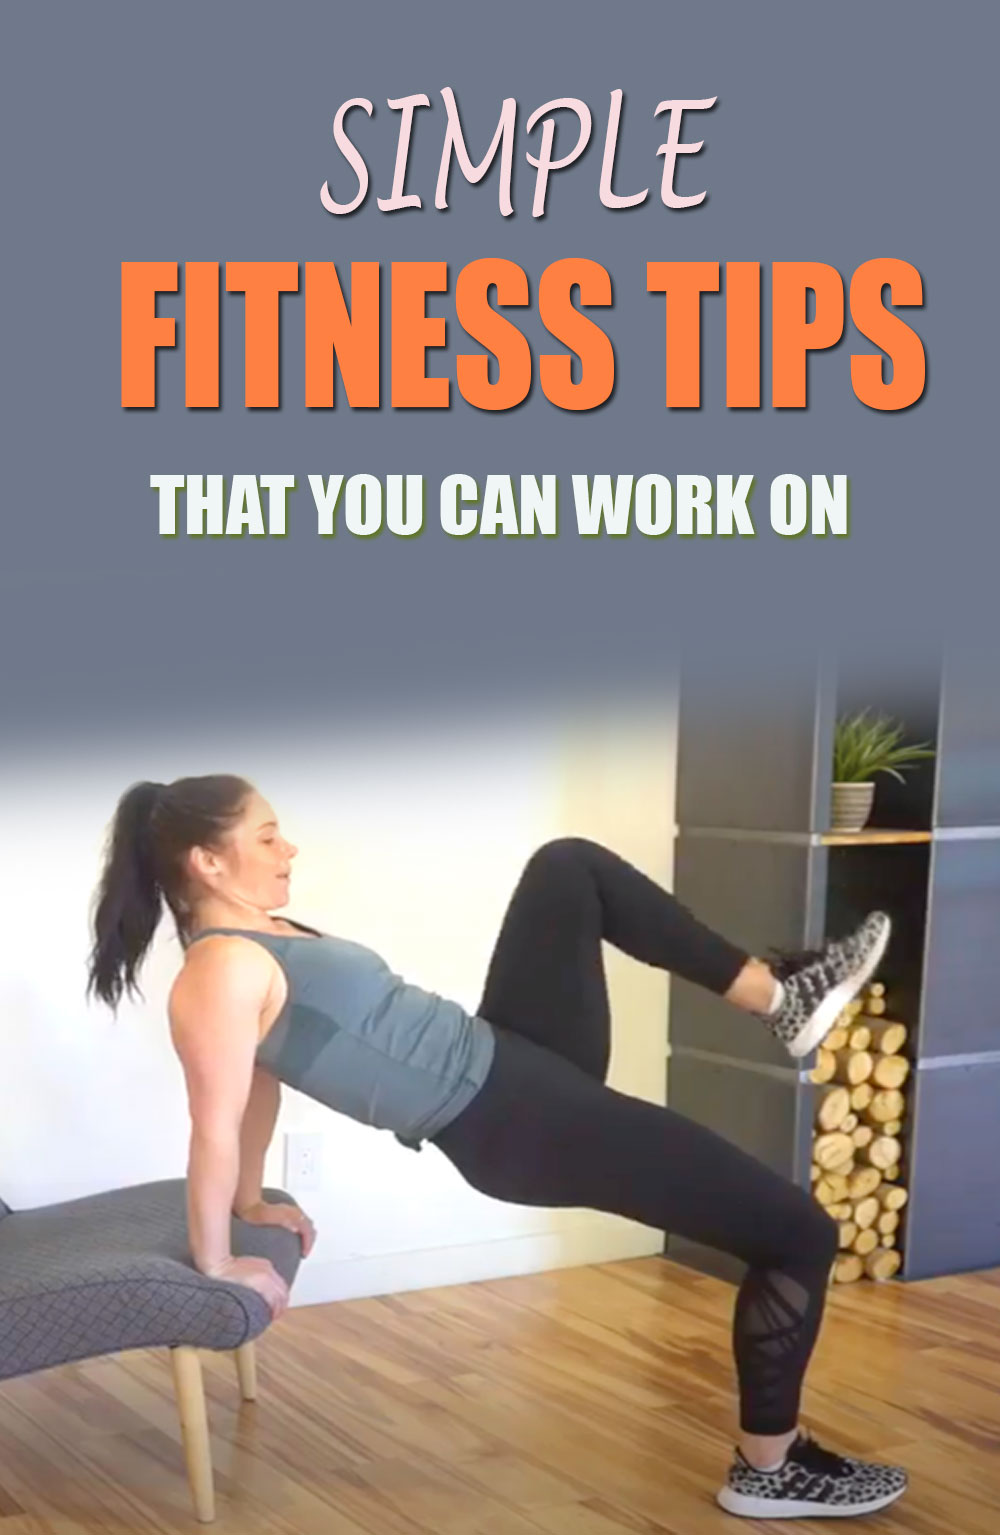 simple fitness tips that you can work on